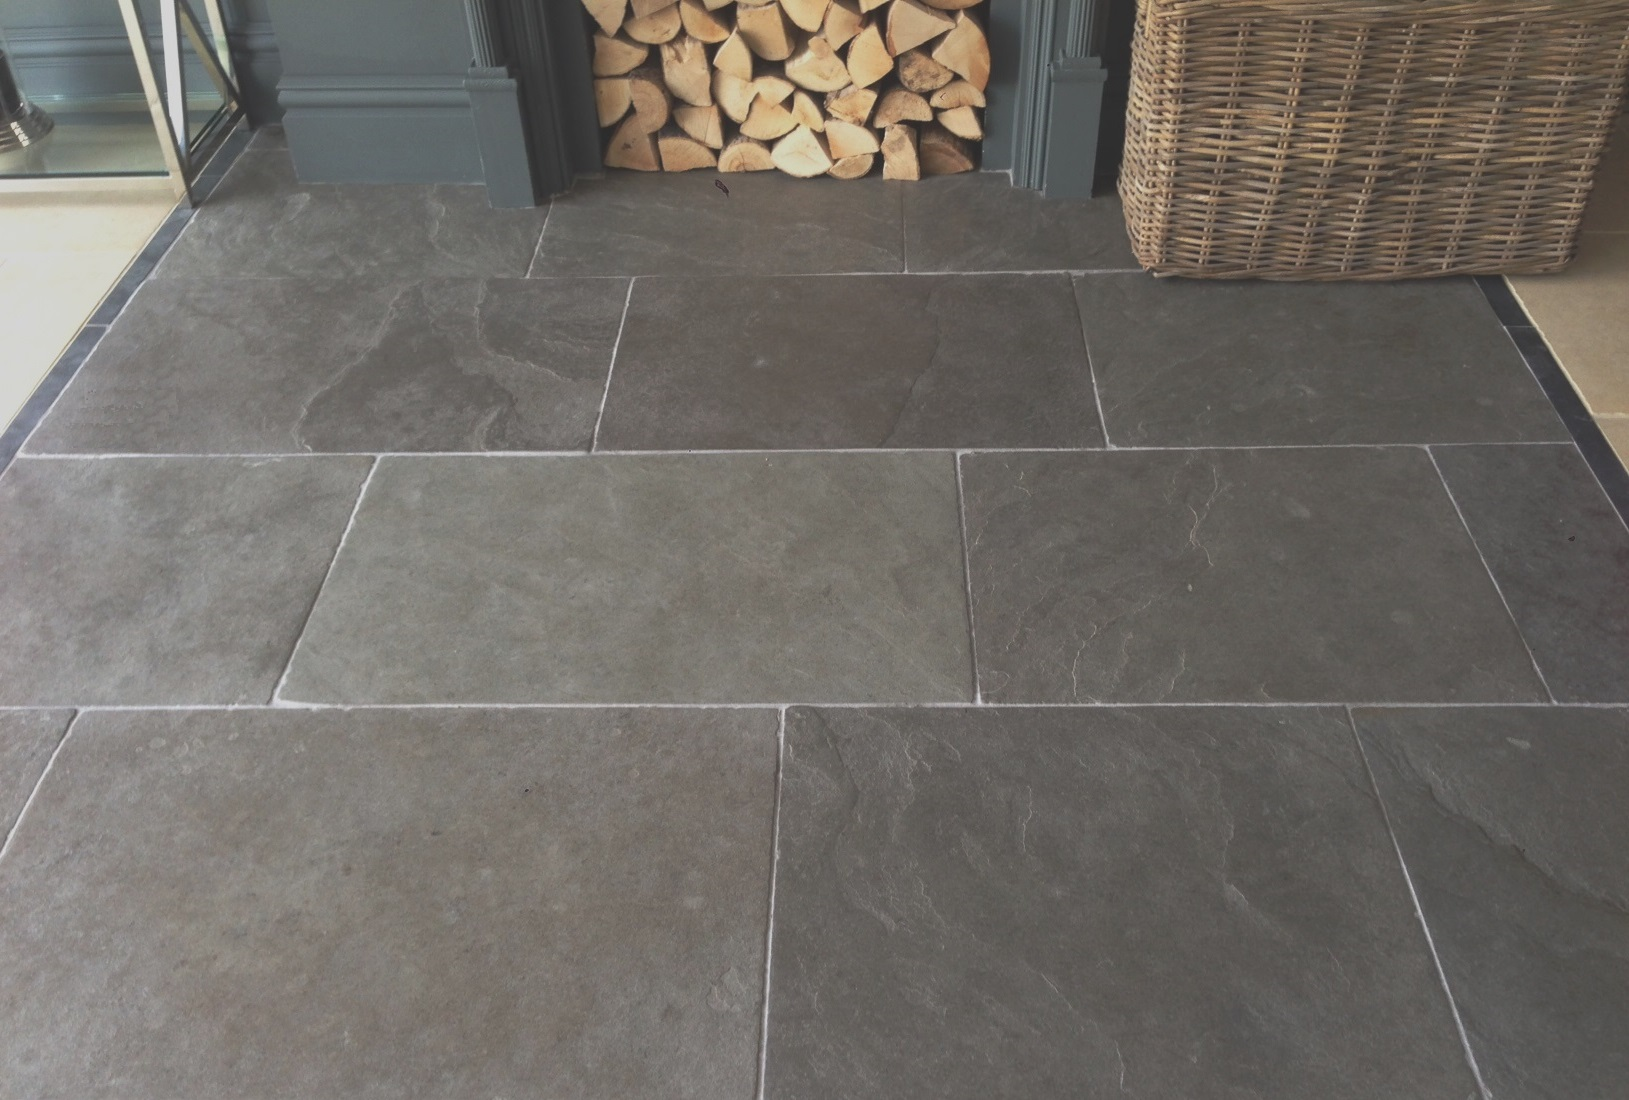 Every Natural Stone Tile Has Its Own Recommended Use